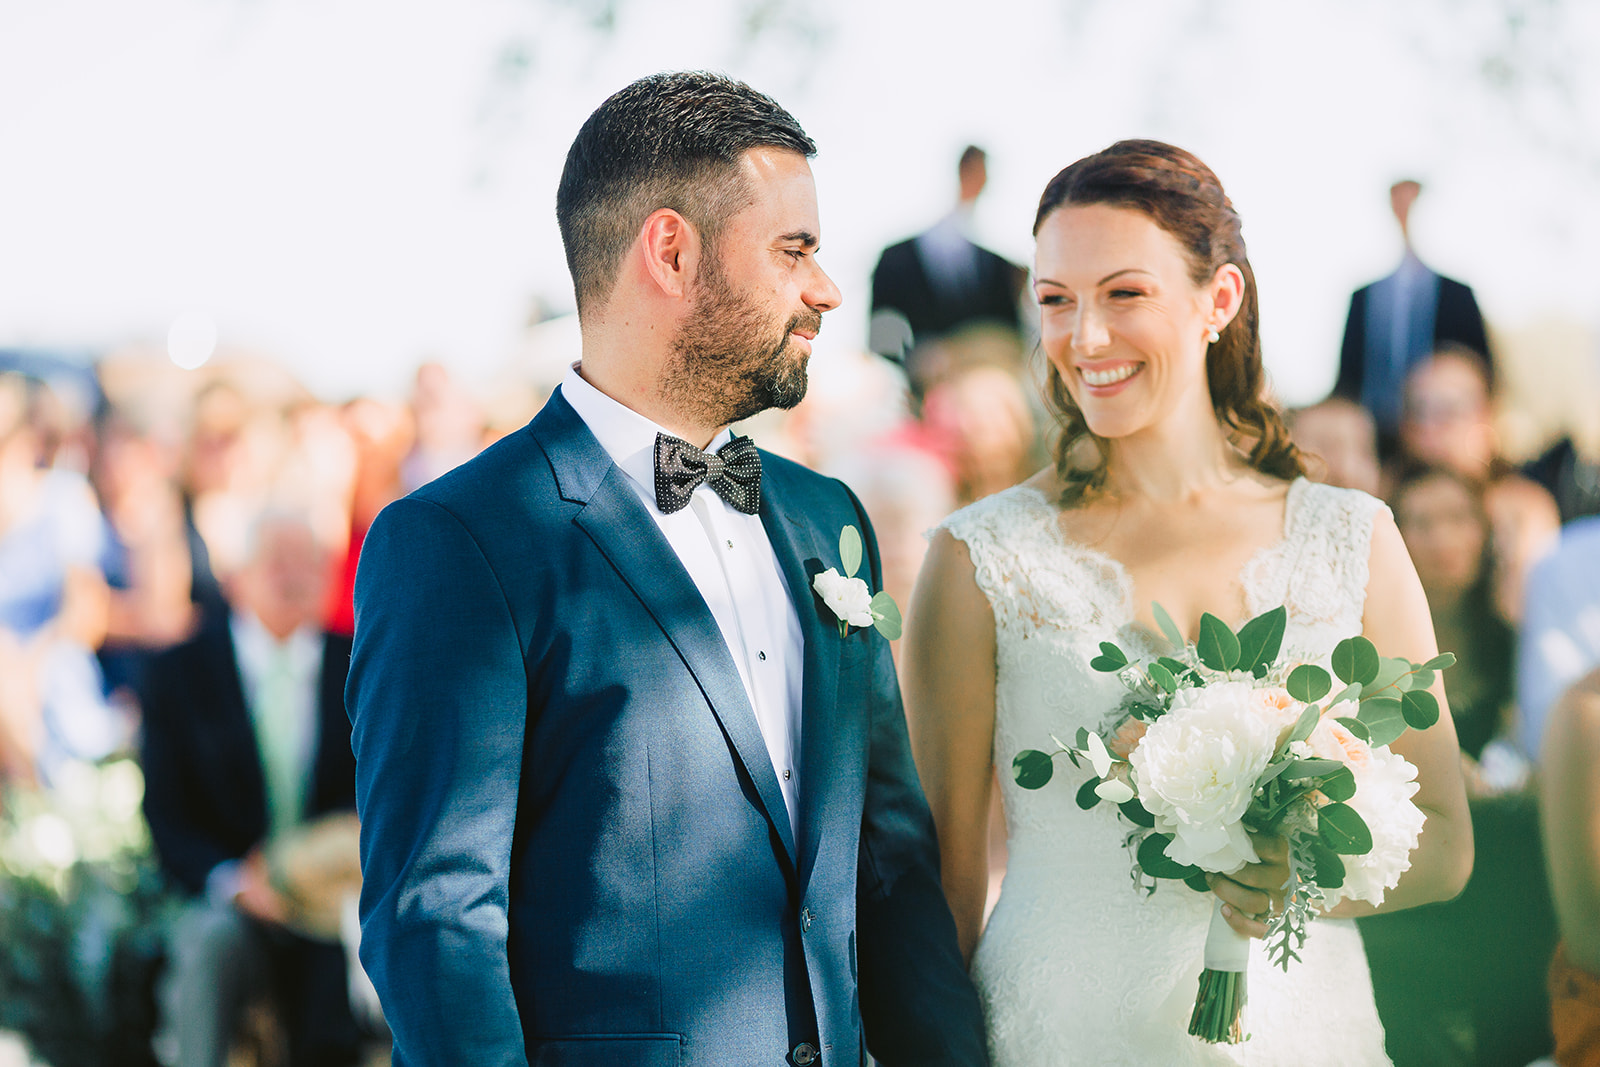 Bride and groom smiling at each other during the symbolic wedding ceremony of their Alentejo wedding officant with guests in the blurred background.